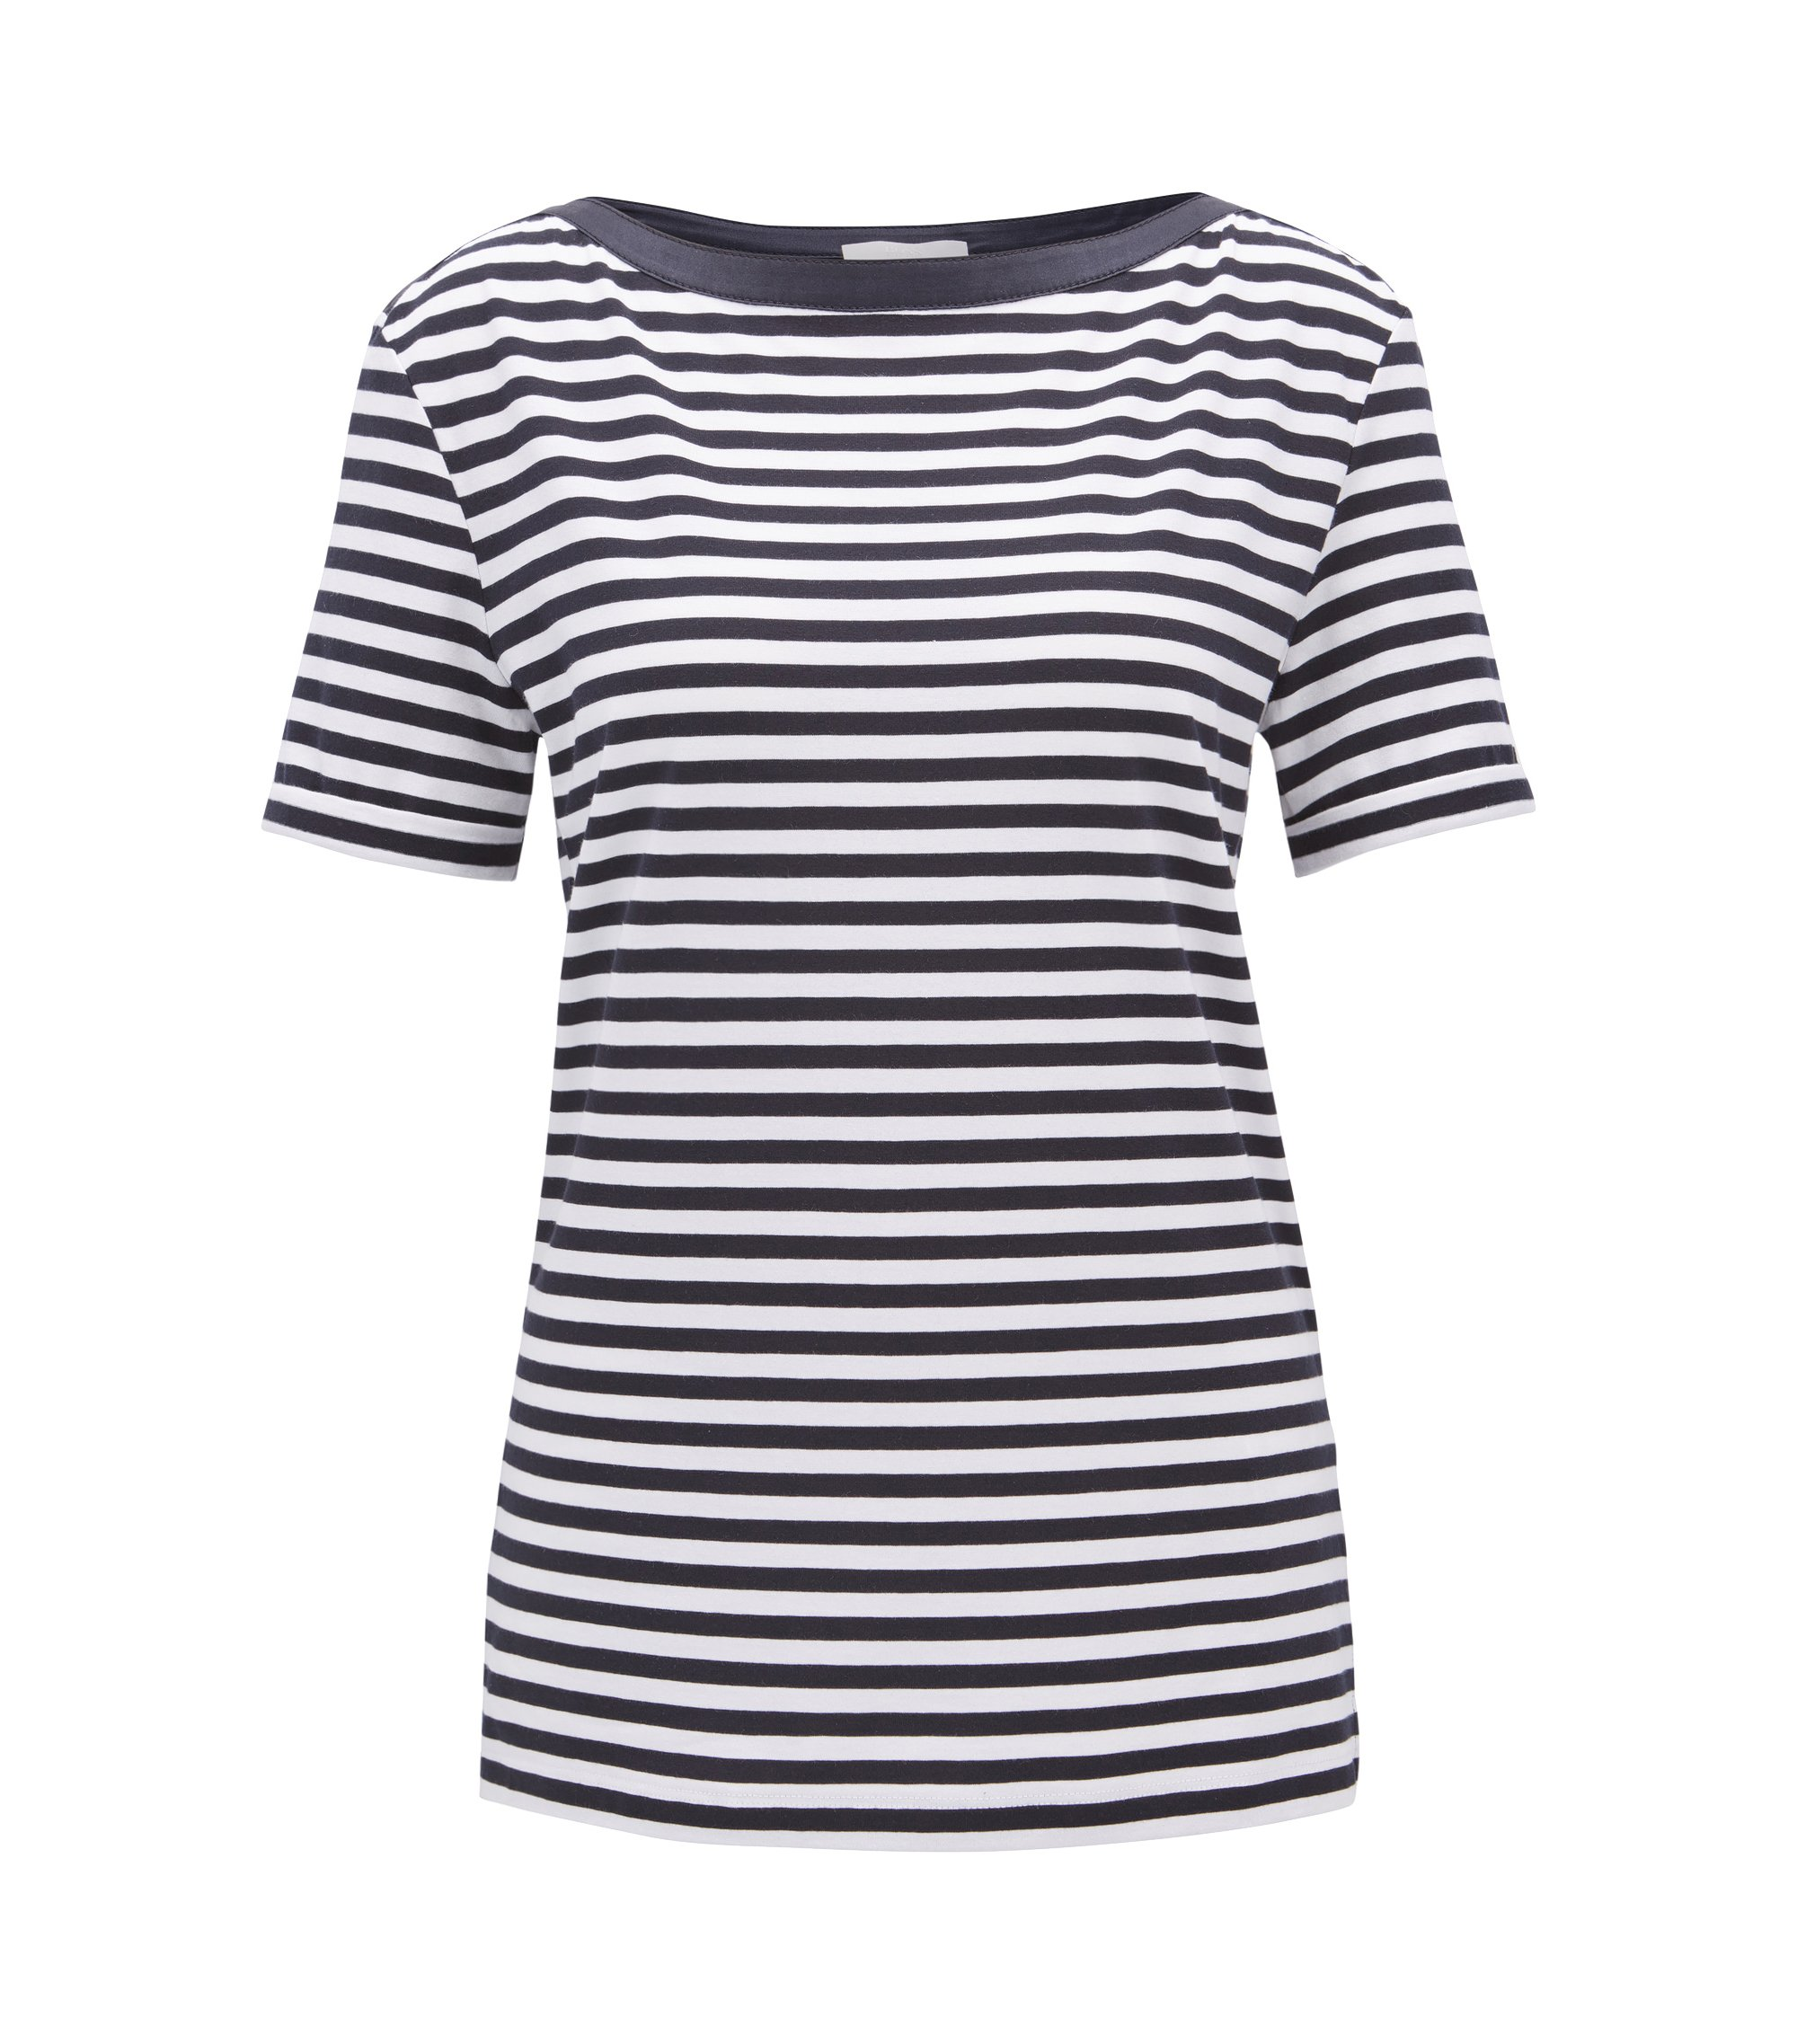 Striped boat-neck top in stretch fabric, Patterned